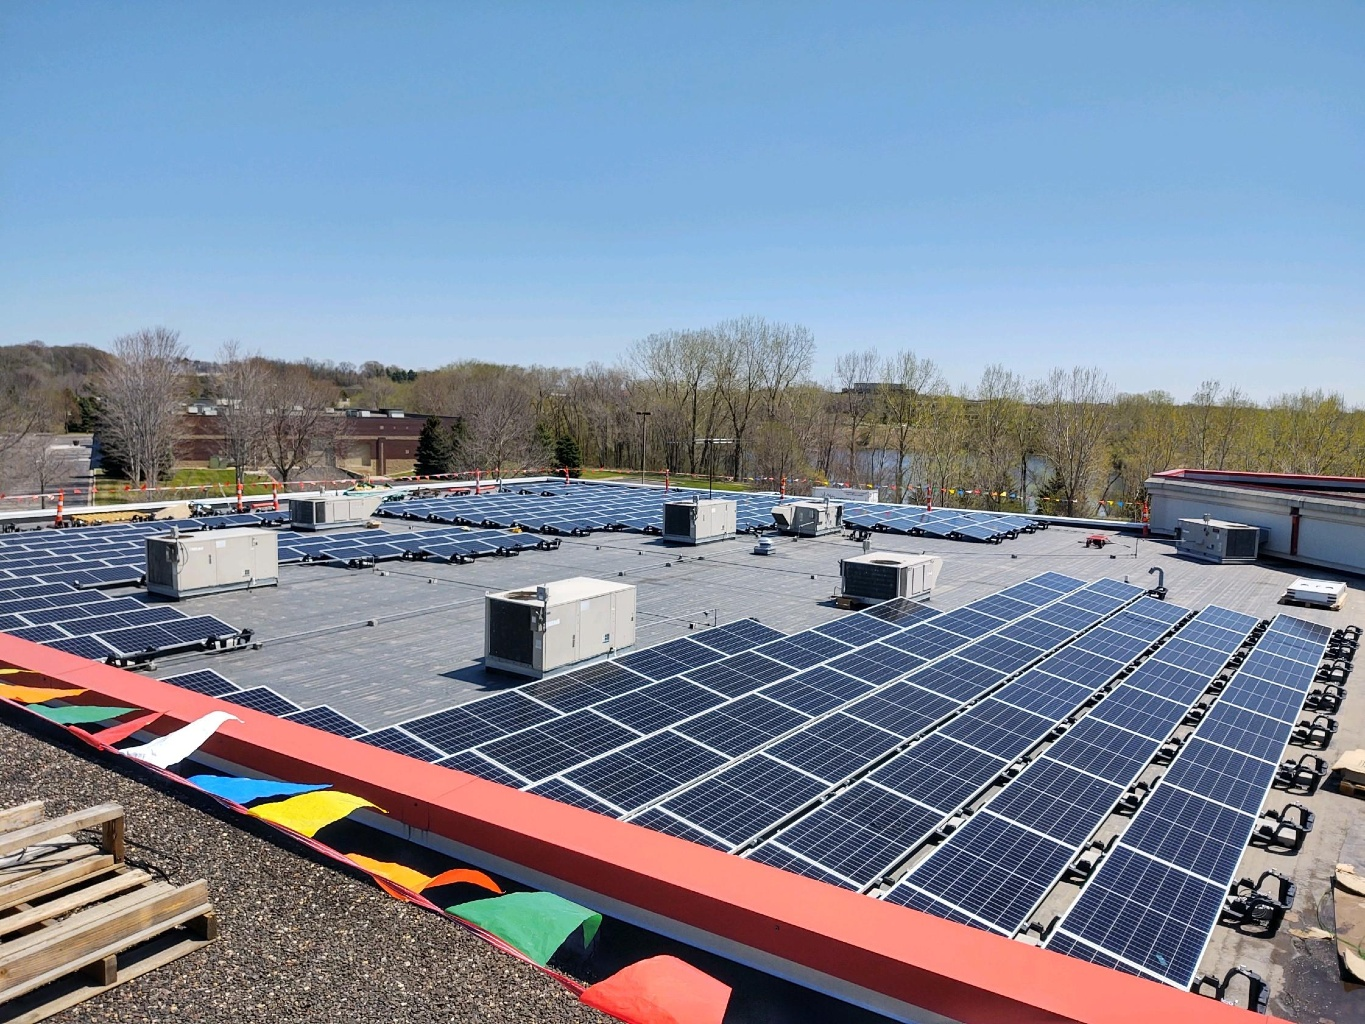 Eagan-based Smart Data Solutions' 440 solar panels produce enough energy to power 59% of its 29,000-square-foot building.  The project went live this month.